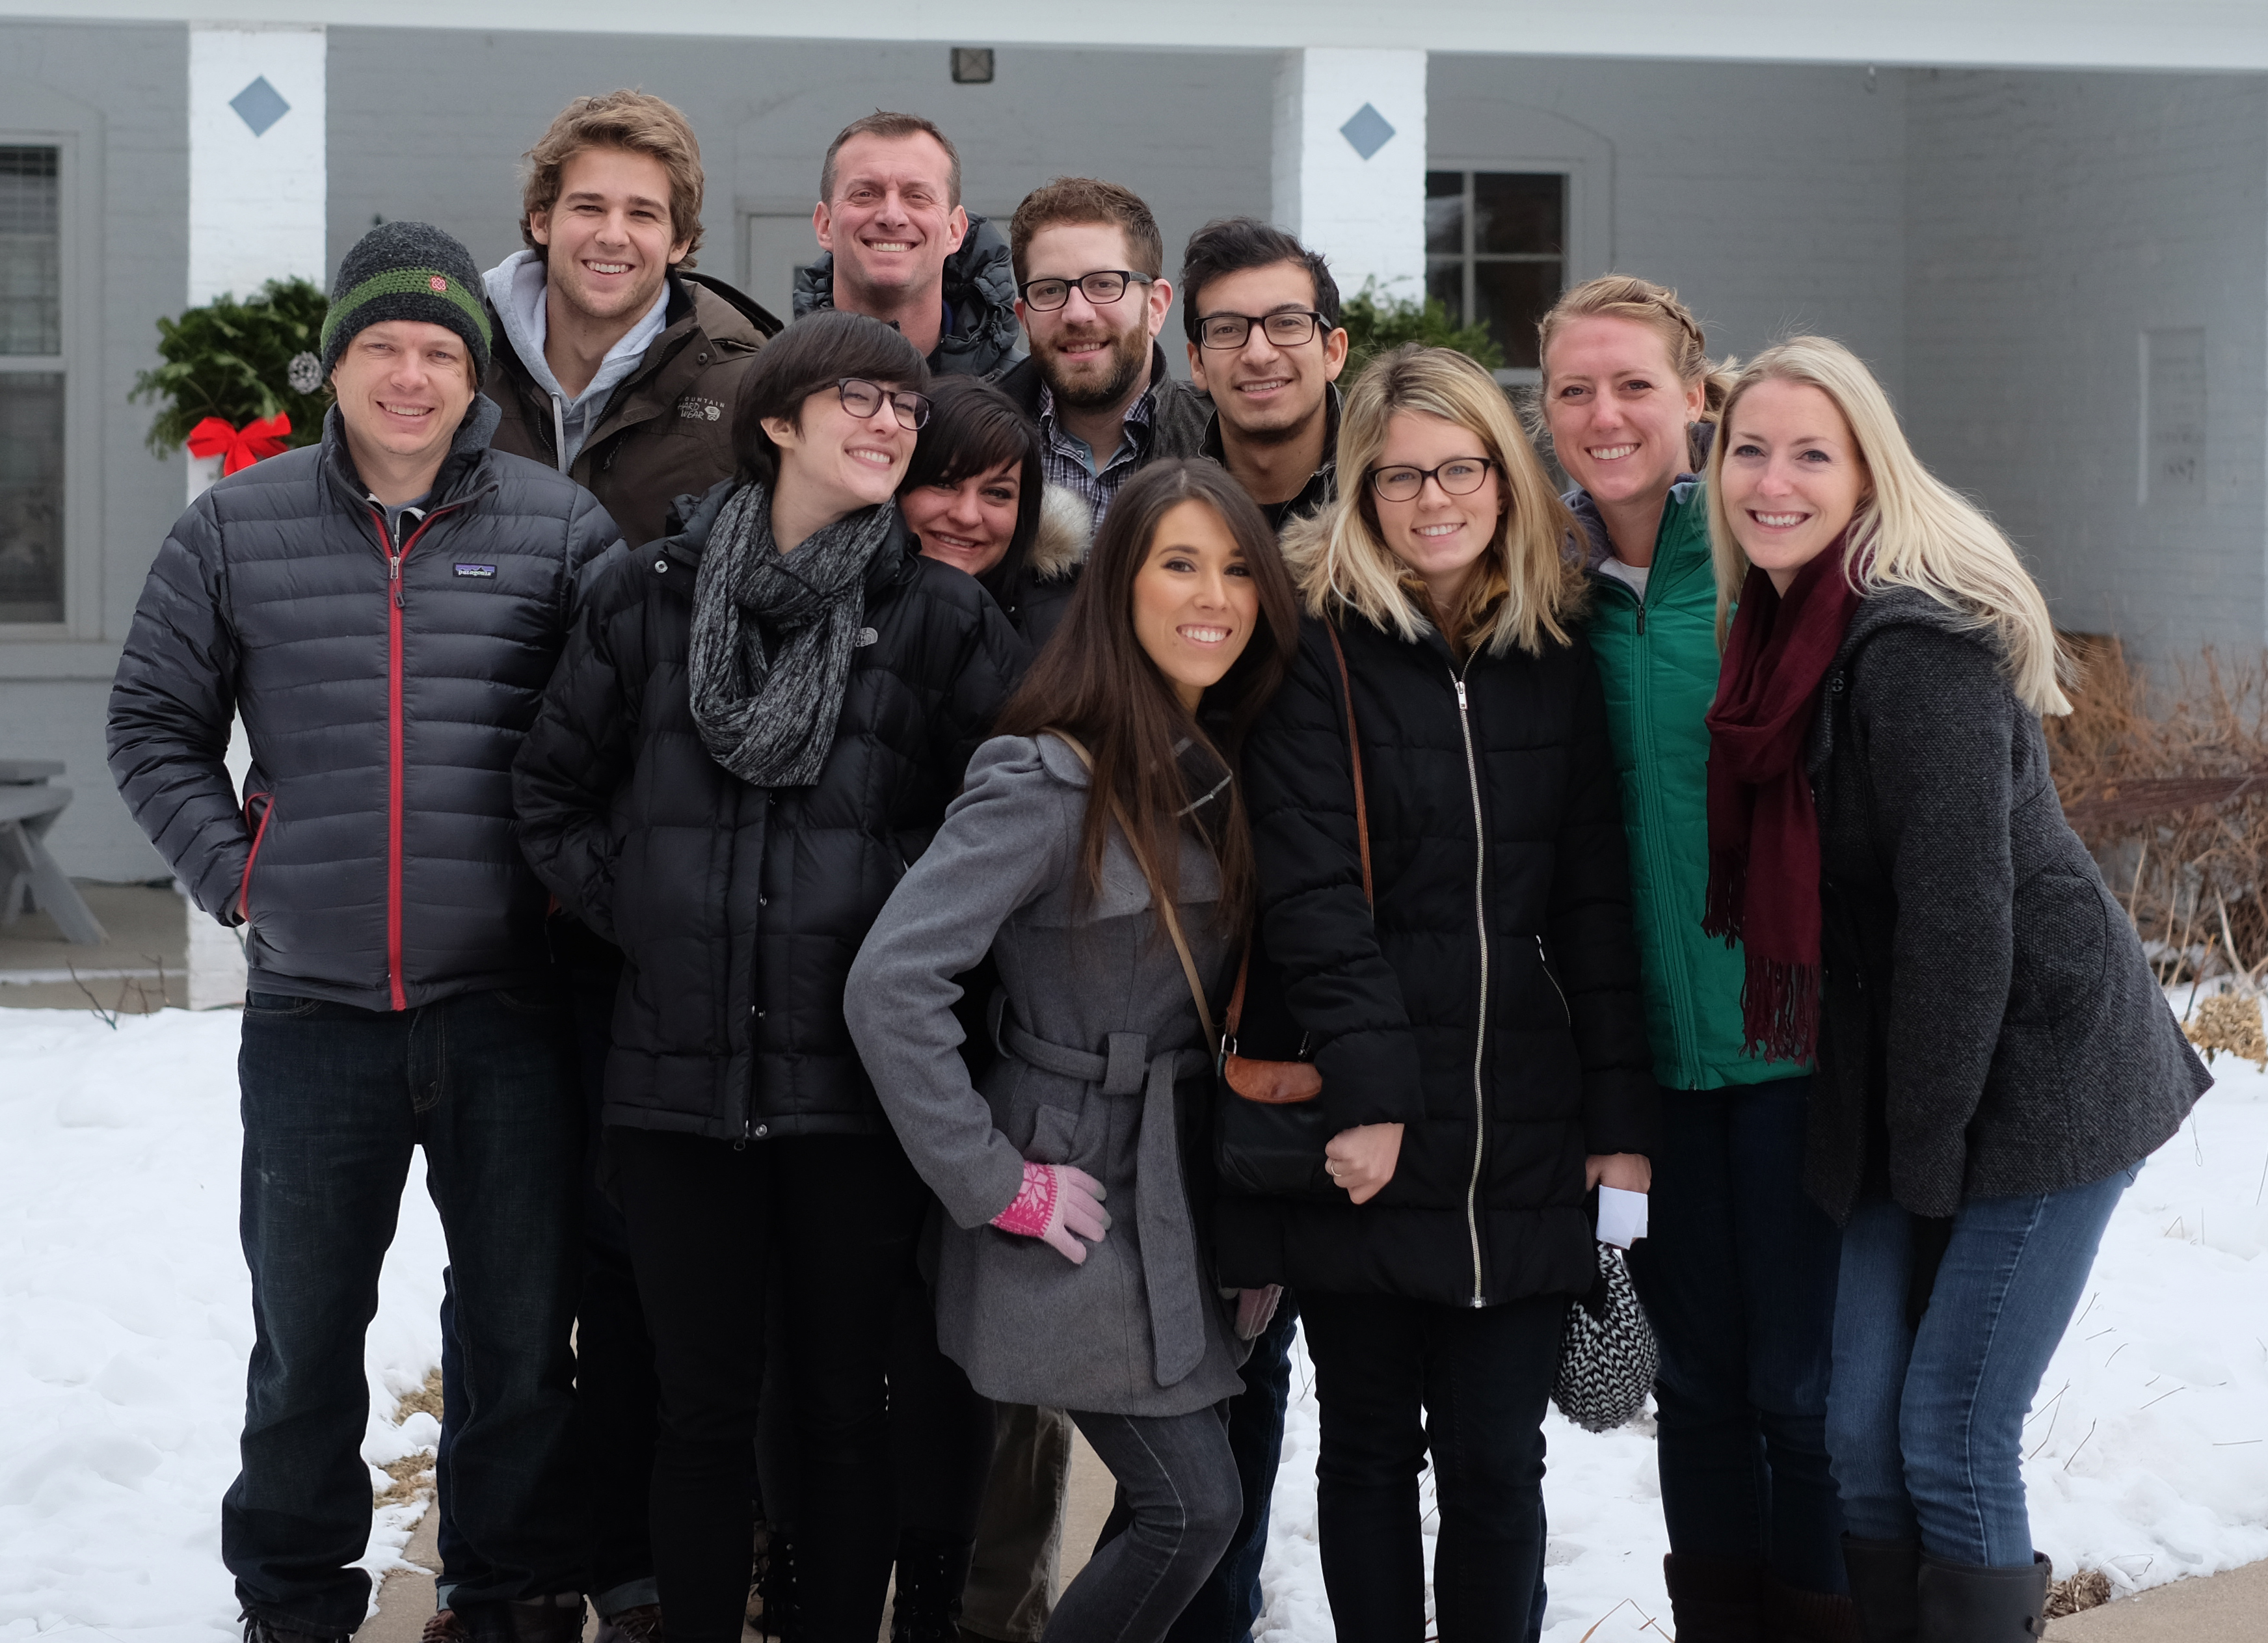 The Rule29 Team Photographed in January